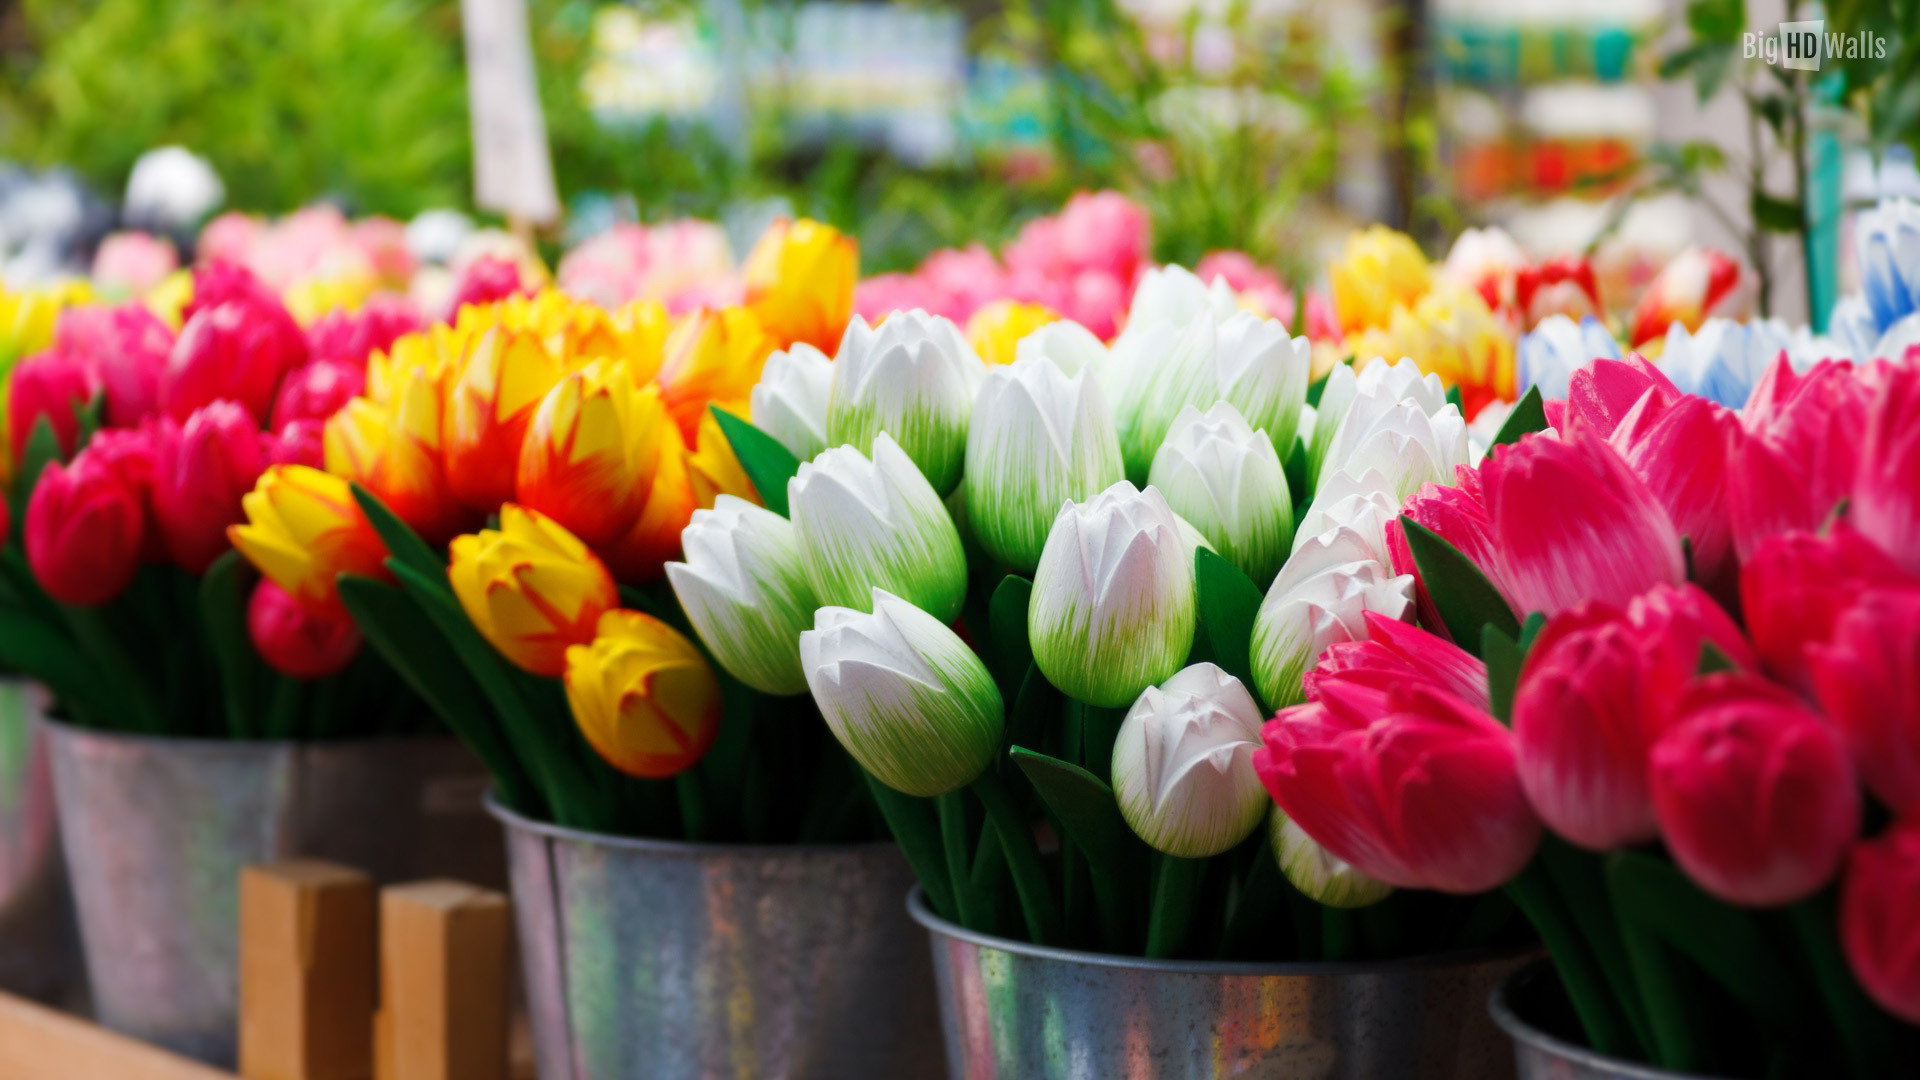 bunches-of-tulips-HD-wallpaper008